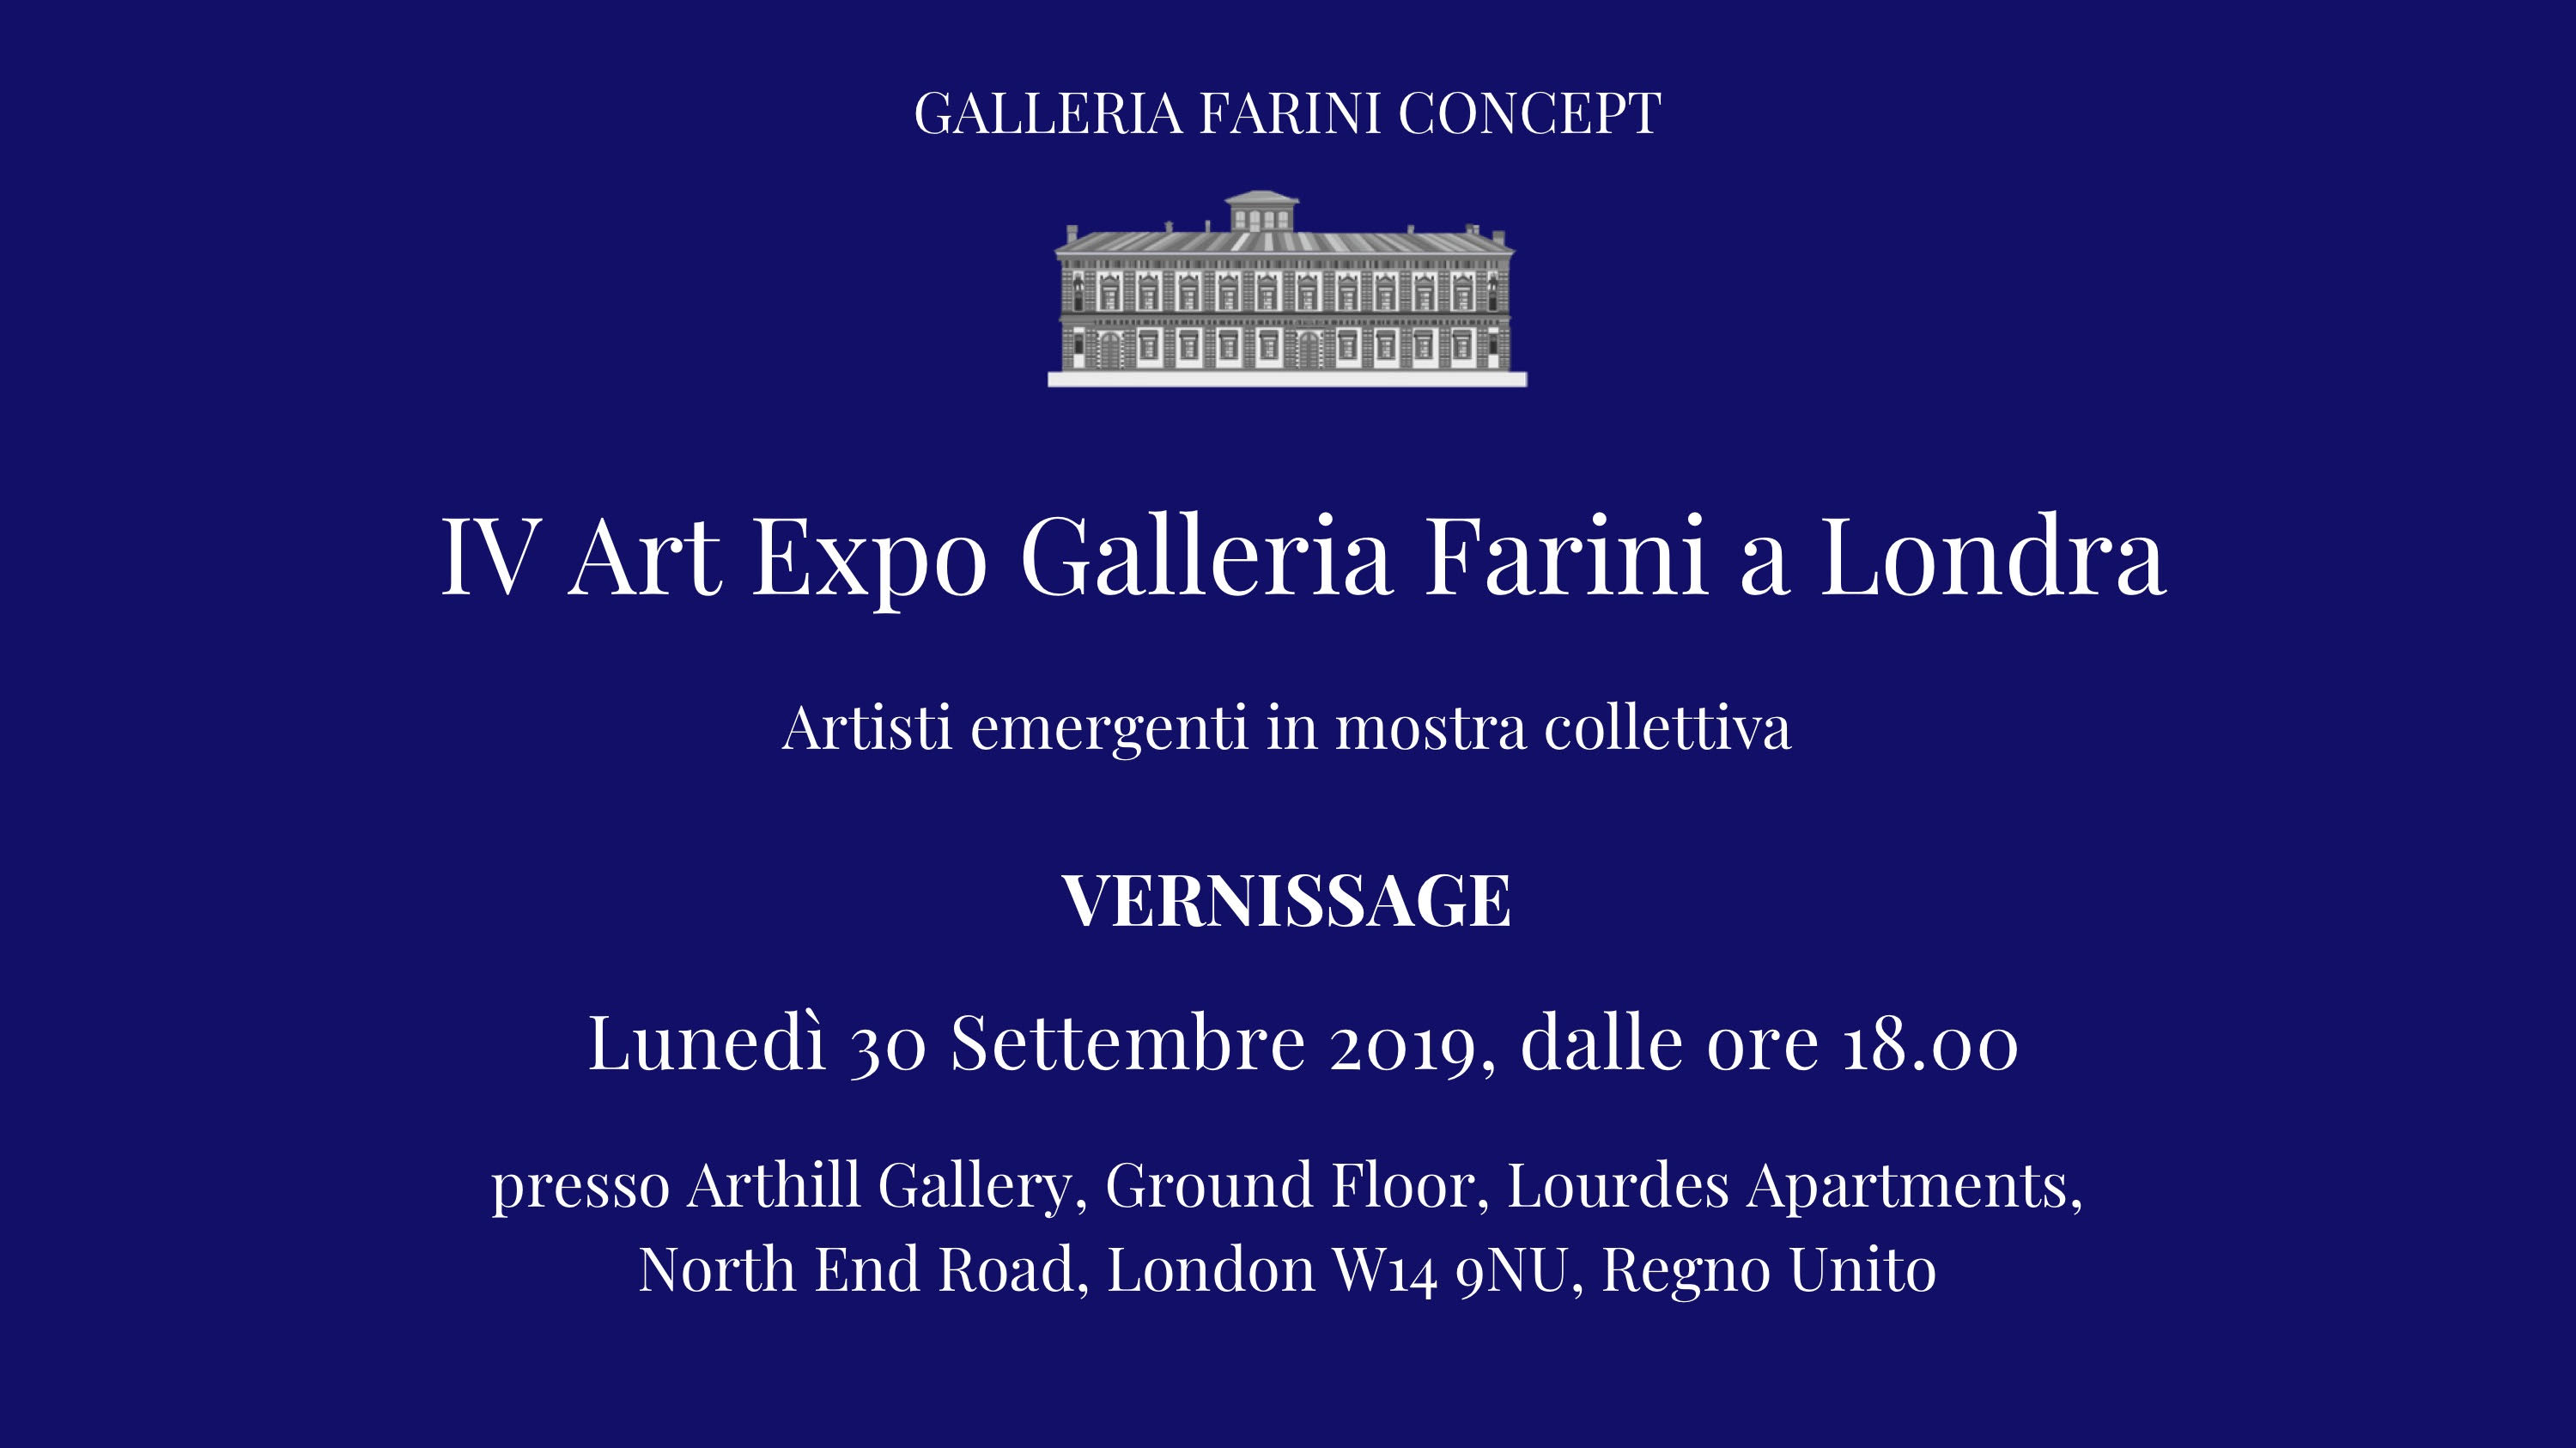 Vernissage – IV ART EXPO GALLERIA FARINI A LONDRA